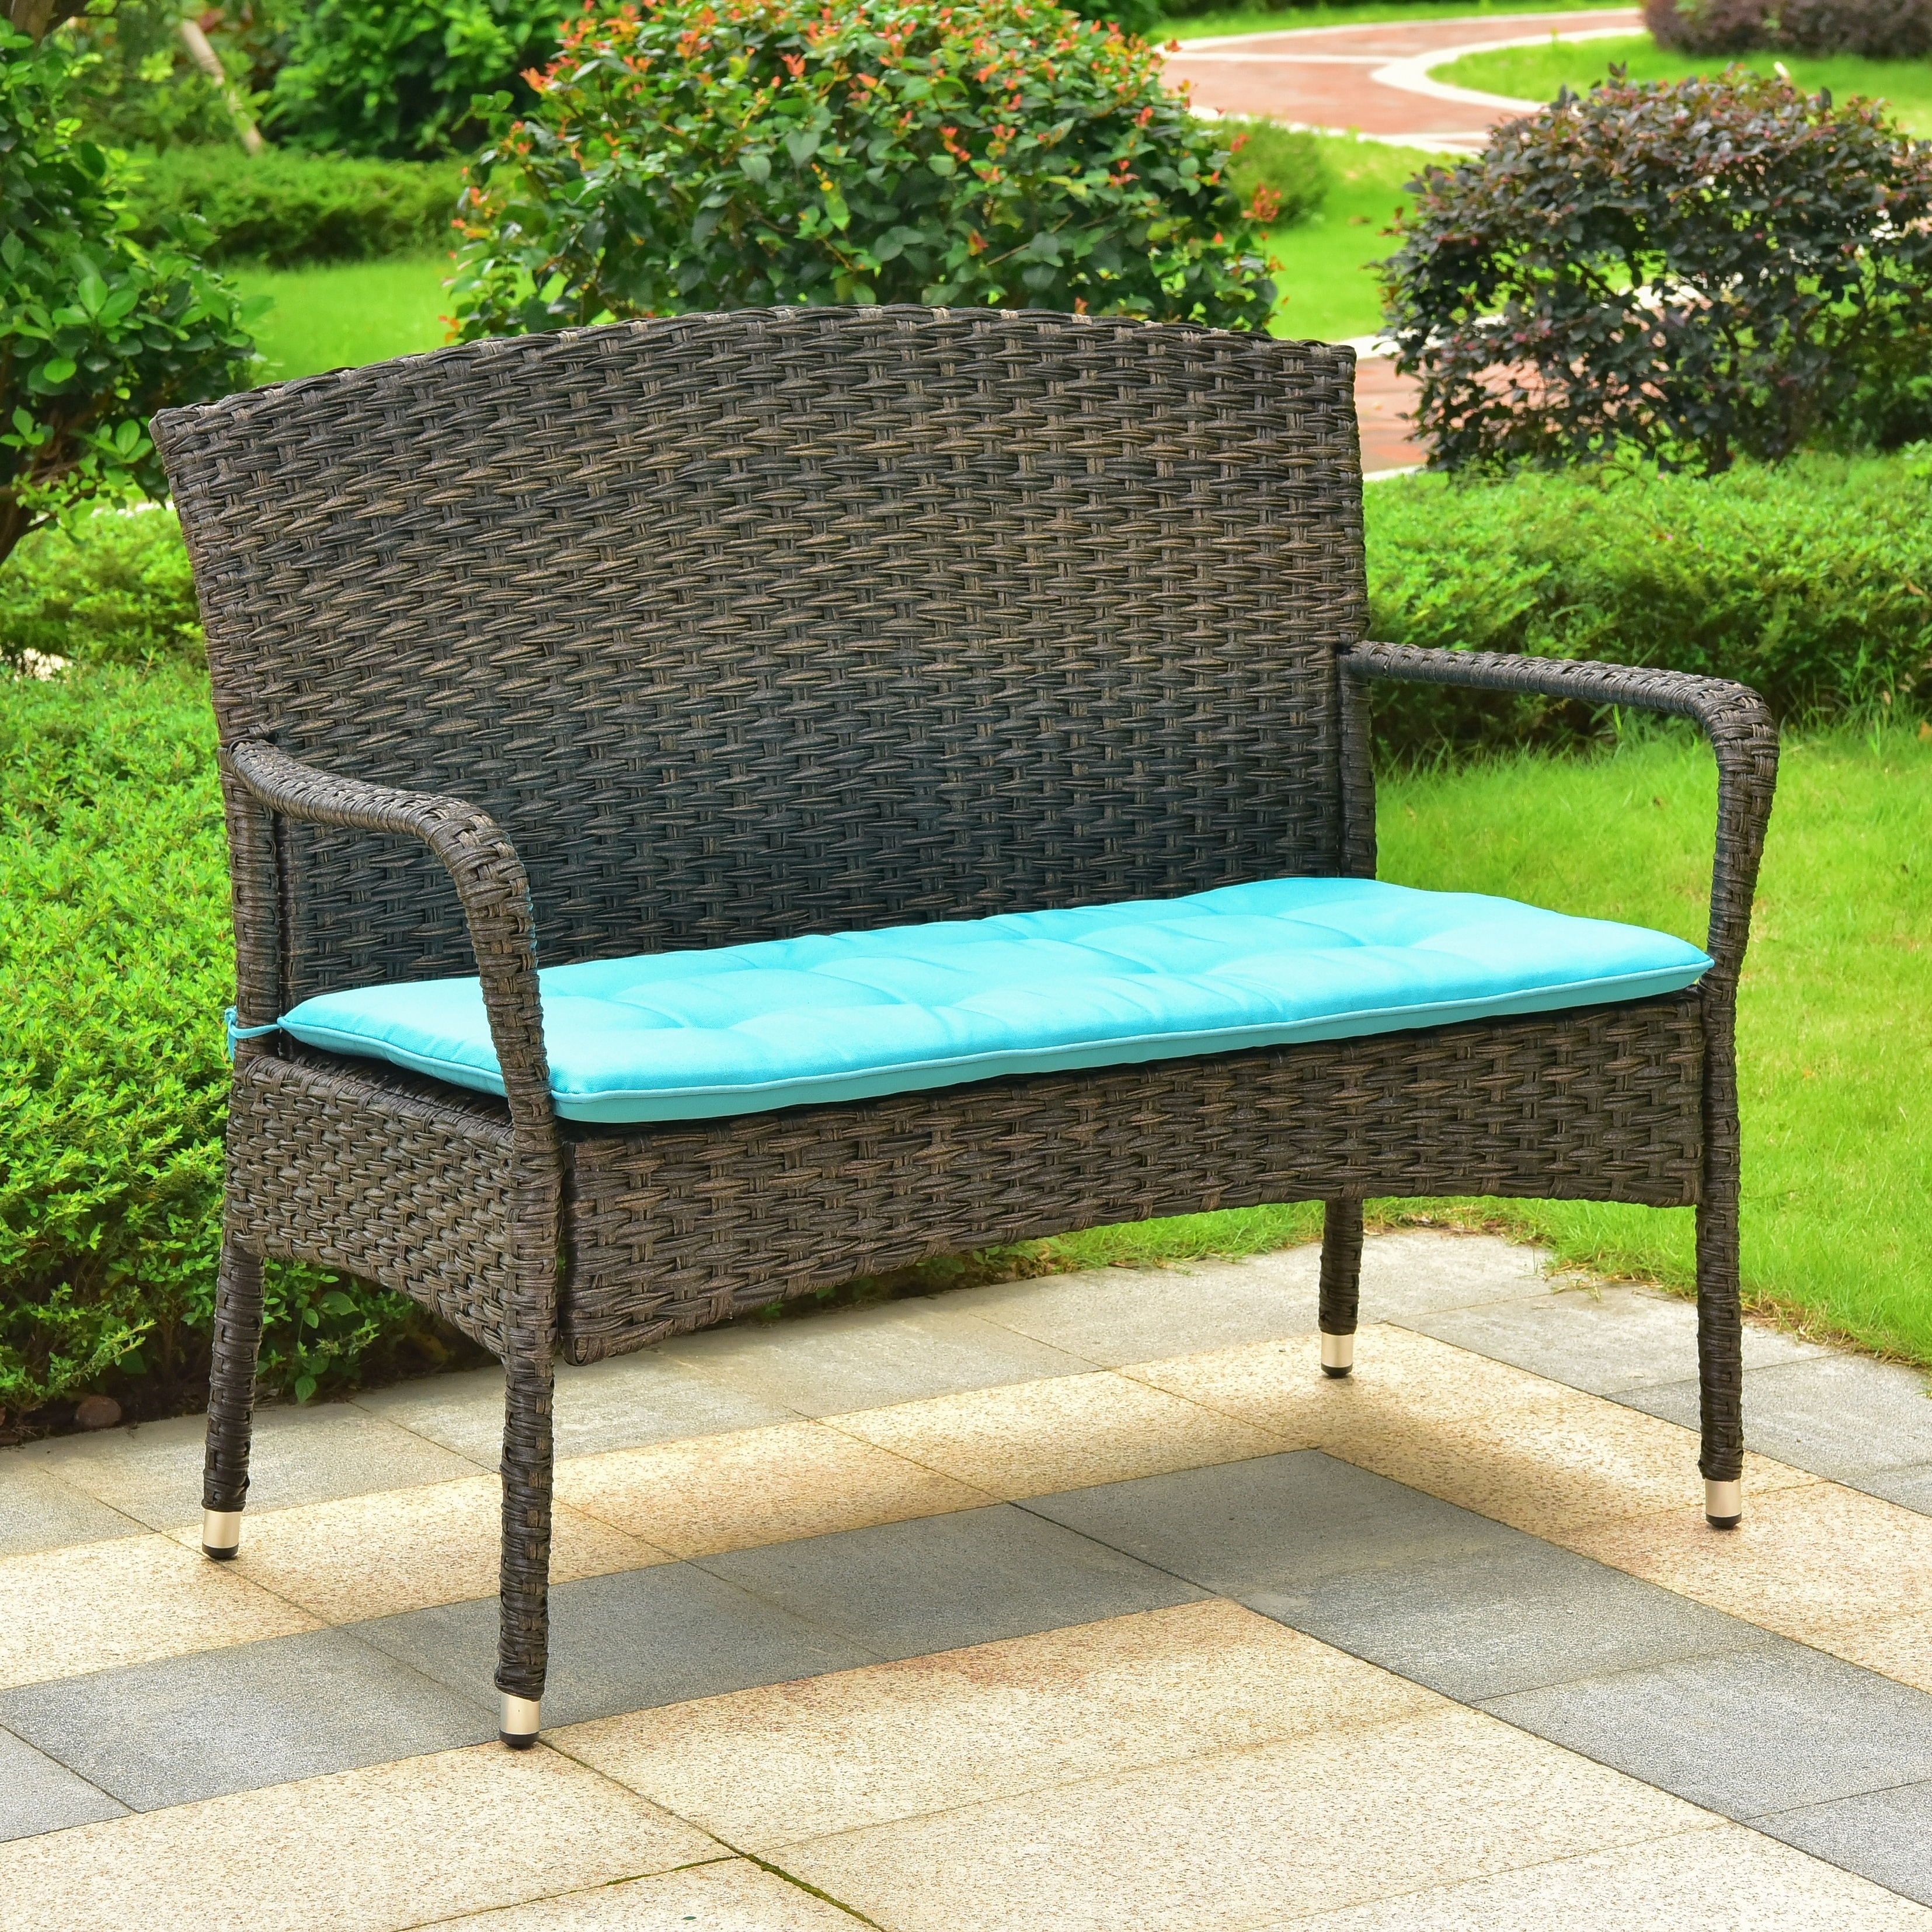 Wondrous International Caravan Majorca Resin Wicker Patio Sofa With Cushion Lamtechconsult Wood Chair Design Ideas Lamtechconsultcom